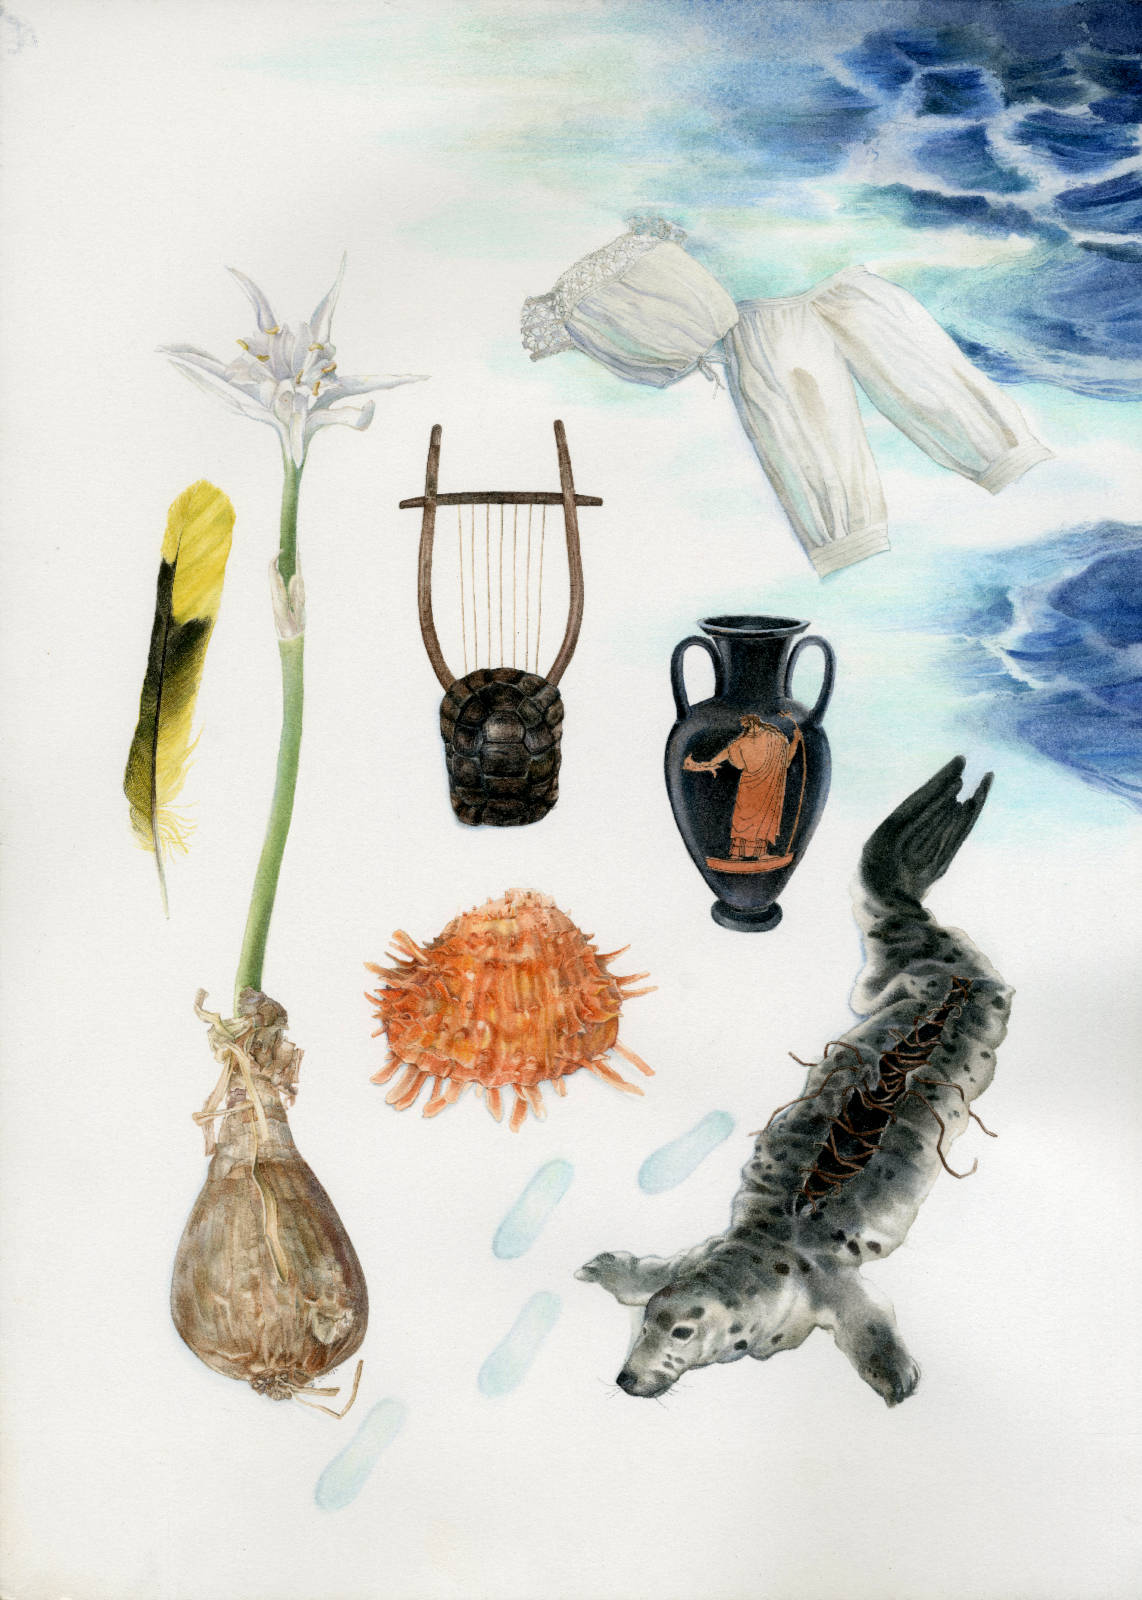 Technical illustration of a herbarium made up with fashionable lolita clothing bordering on edwardian clothing, and an agean sea theme : a shell, a sea daffodil, a greek lyra, a greek vase and a feather collected at Serifos